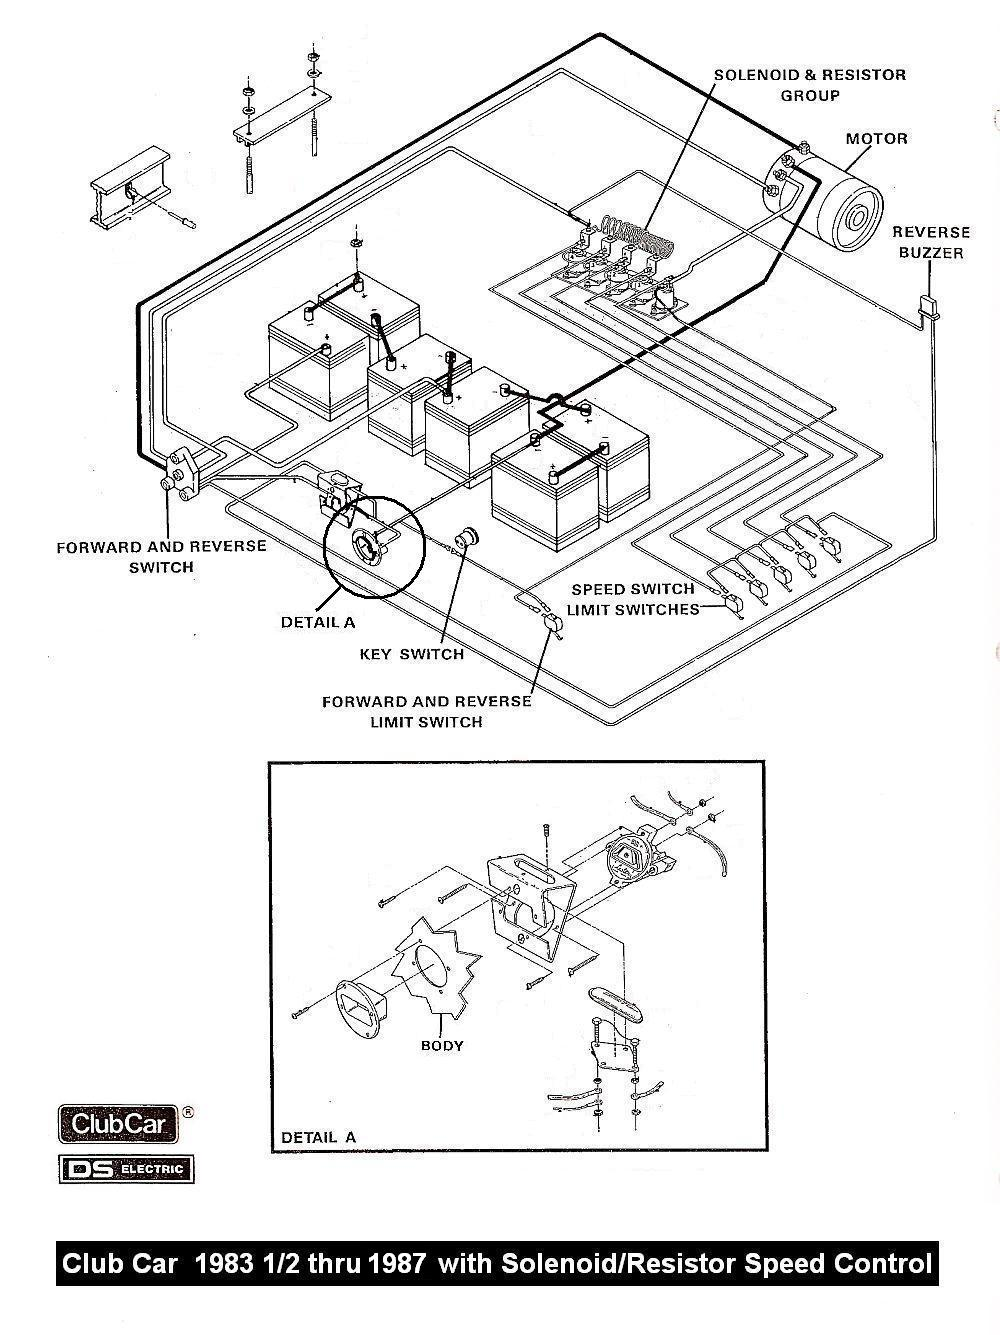 1987 electric club car wiring diagram